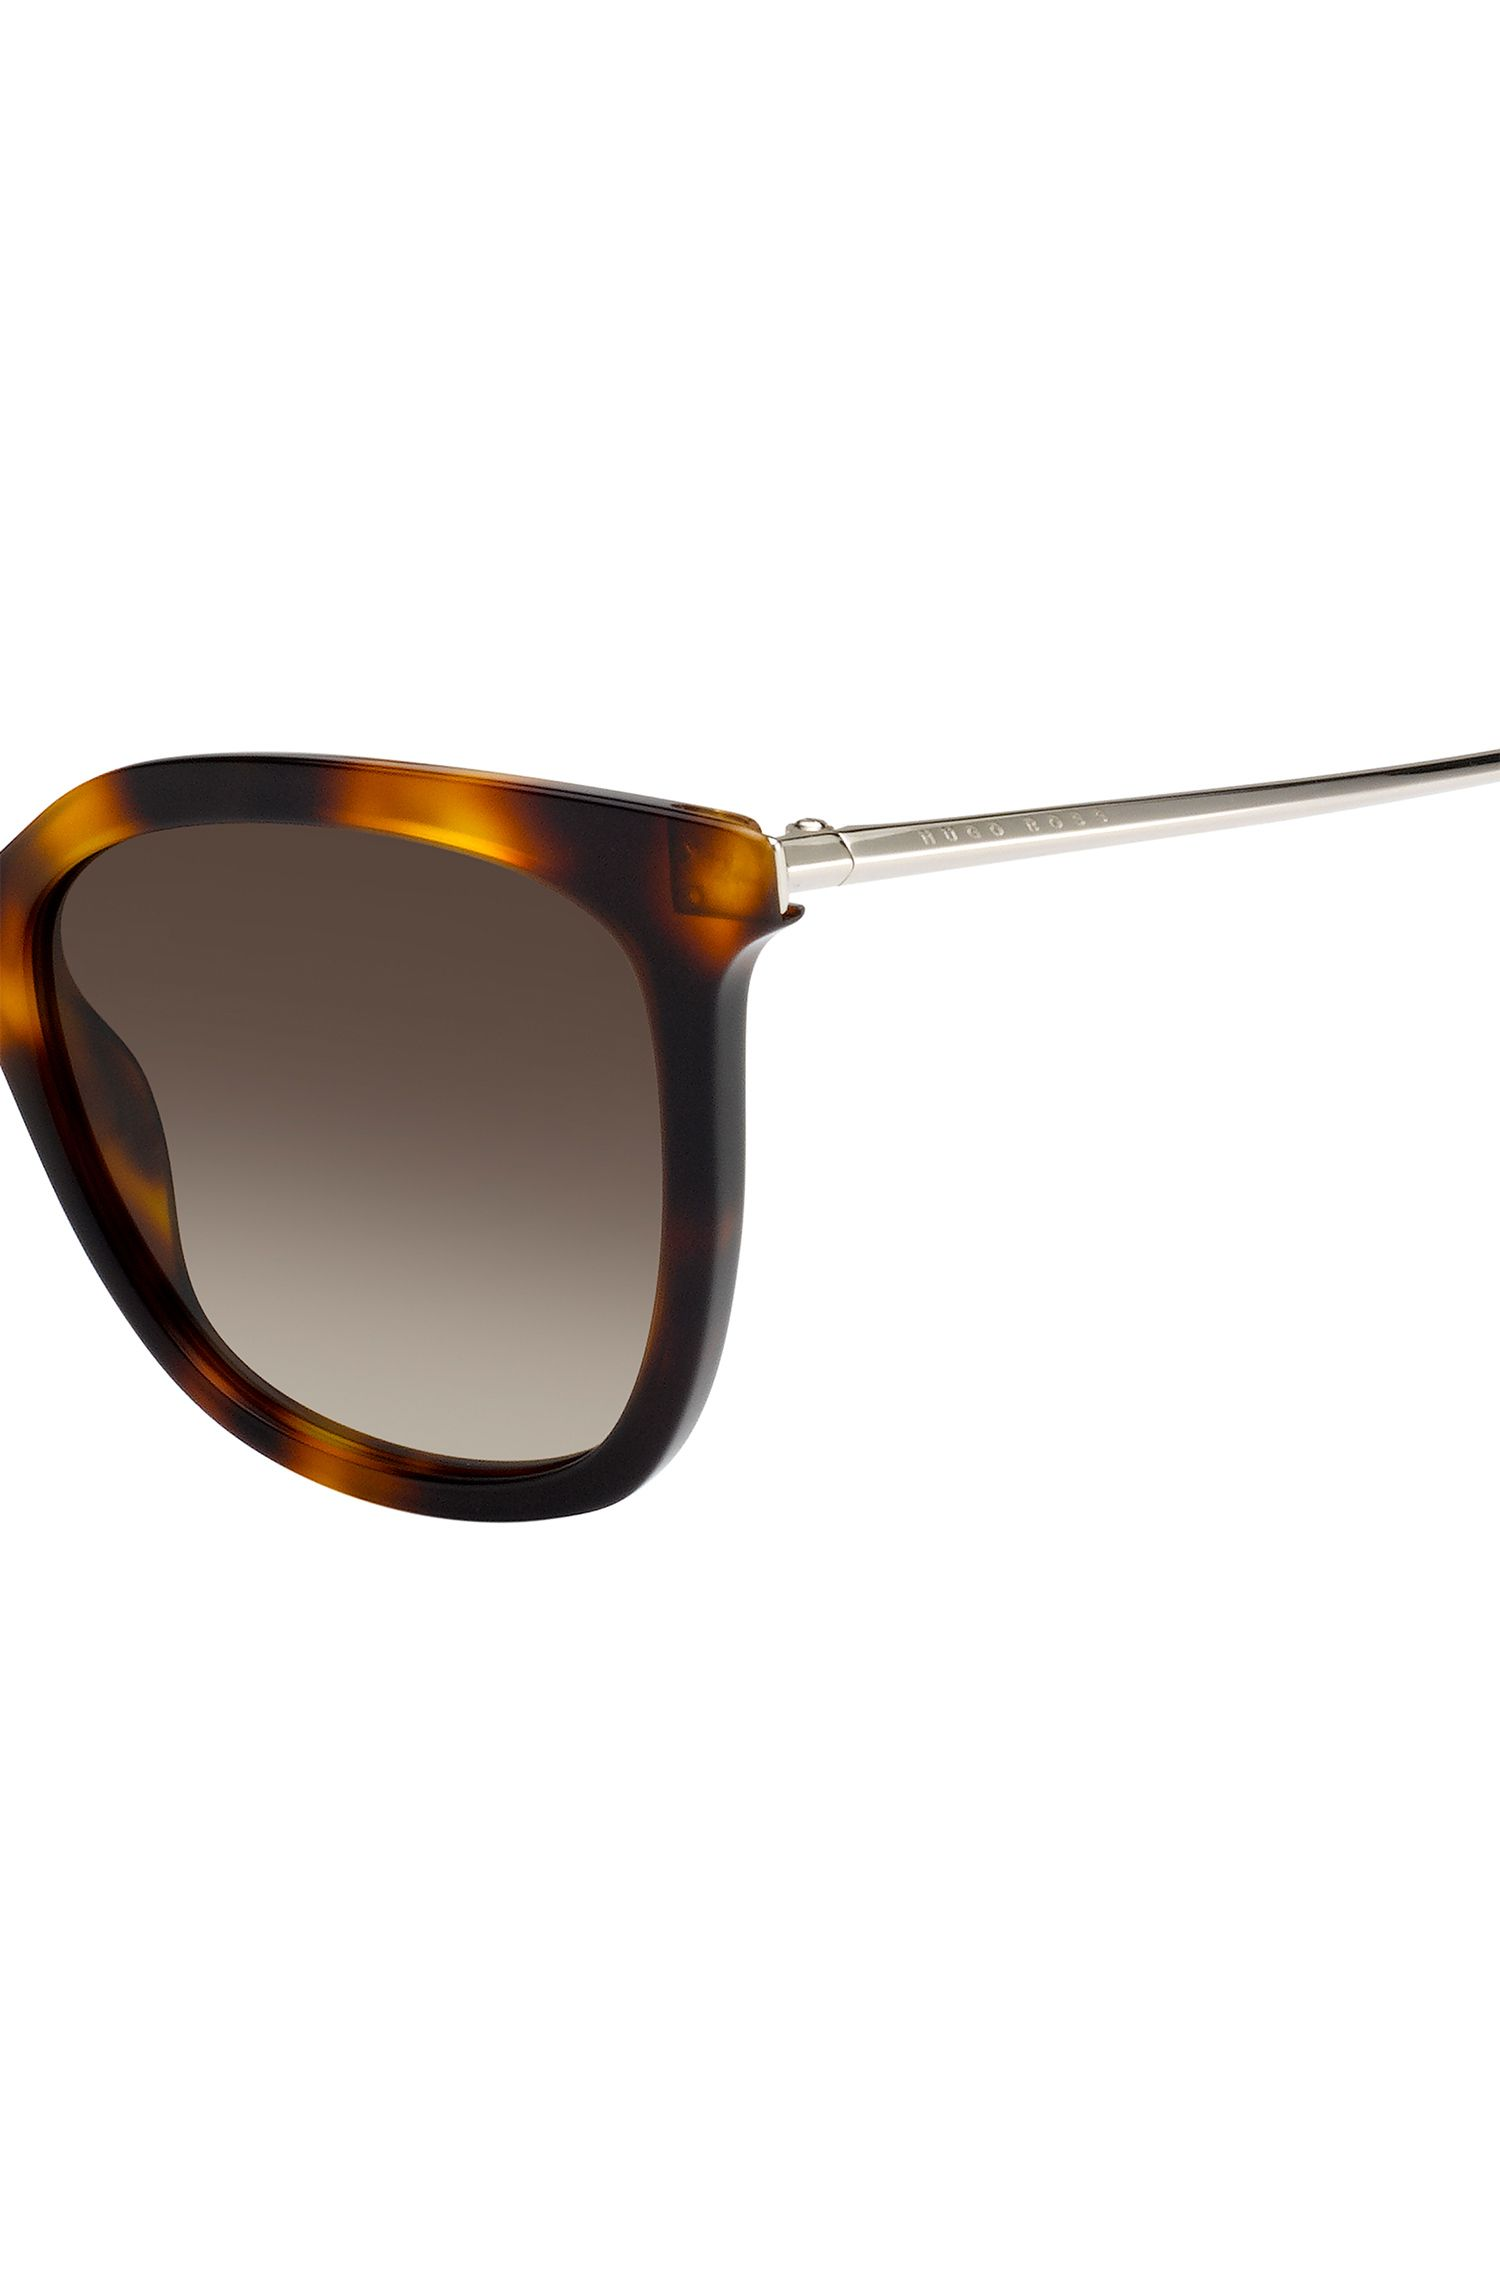 Sunglasses with tortoiseshell acetate frames, Patterned